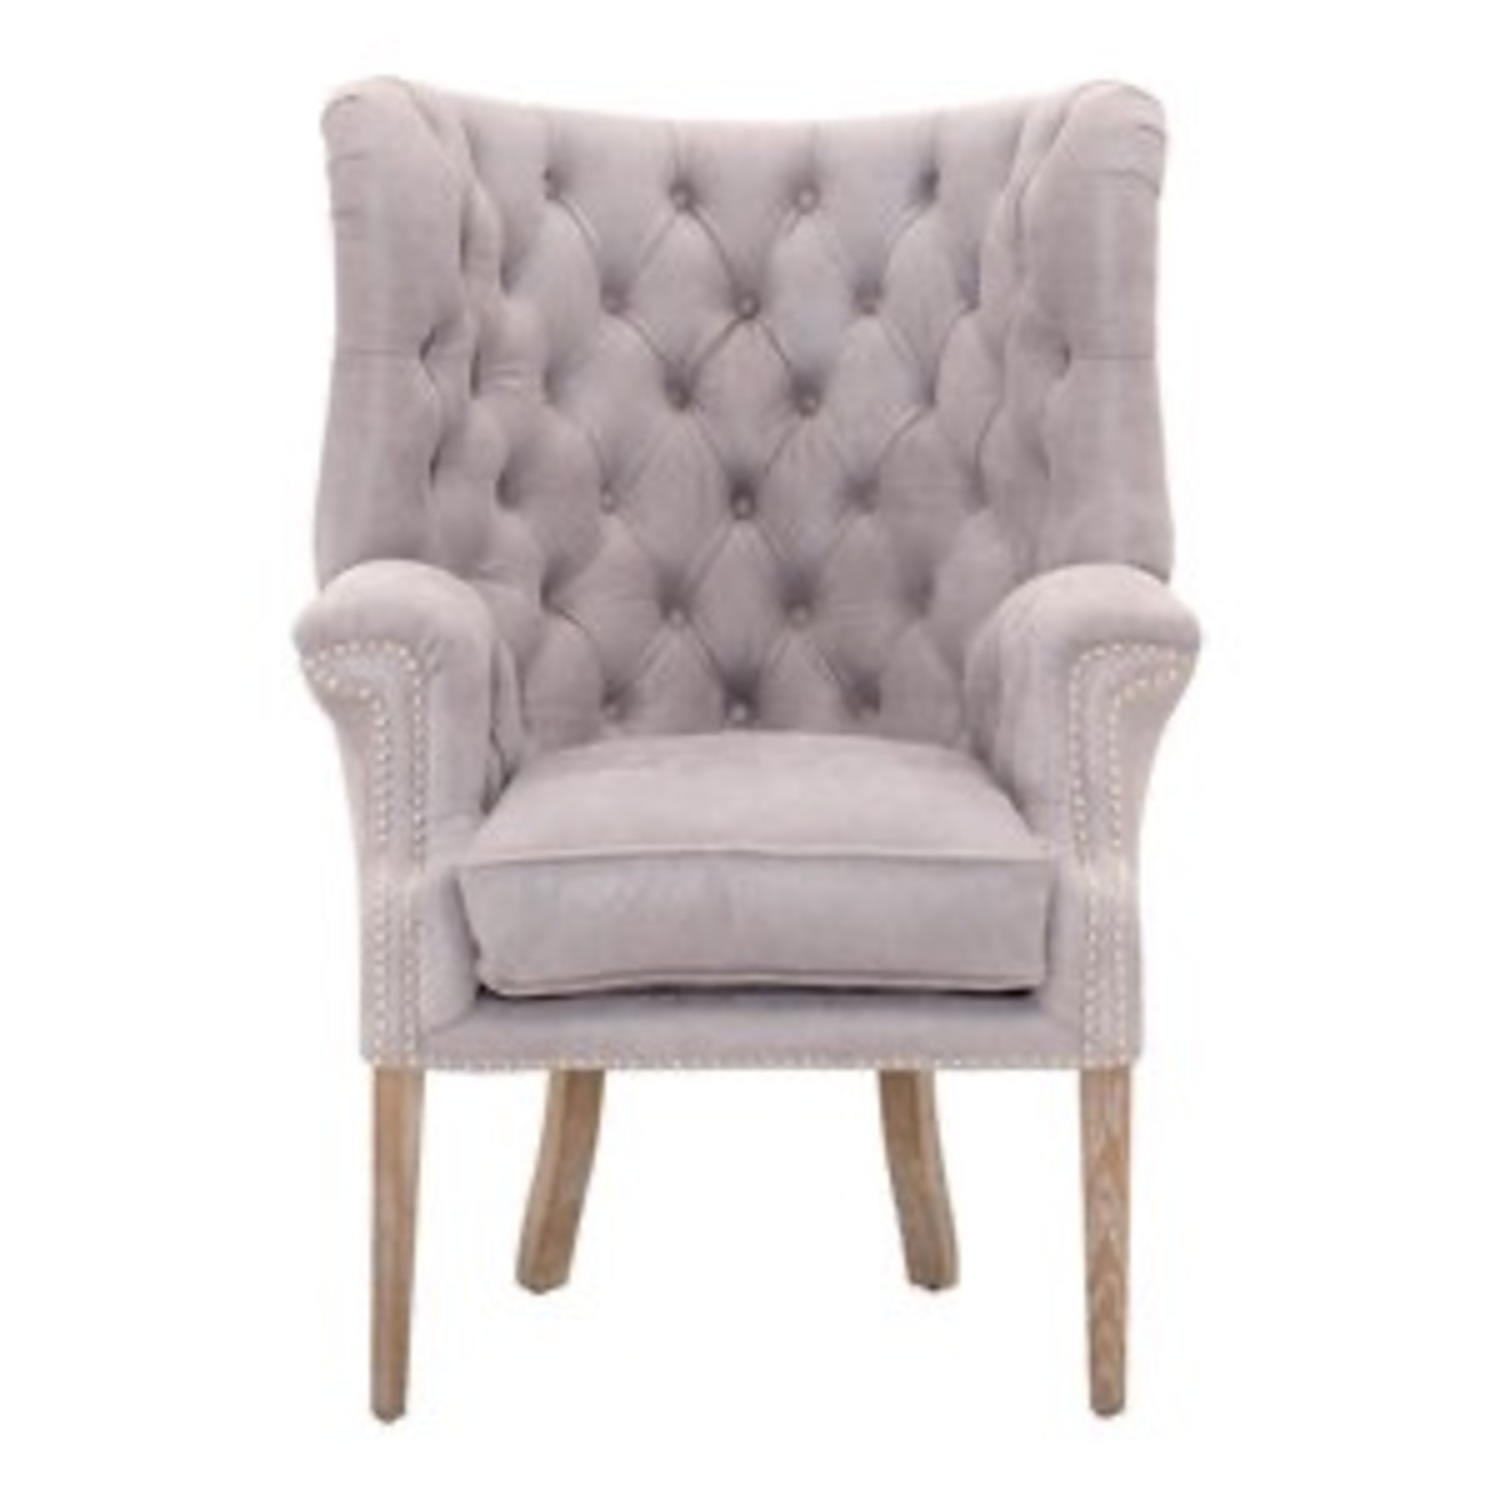 Grey/slight Lavender Leather Wingback Chair - image-1